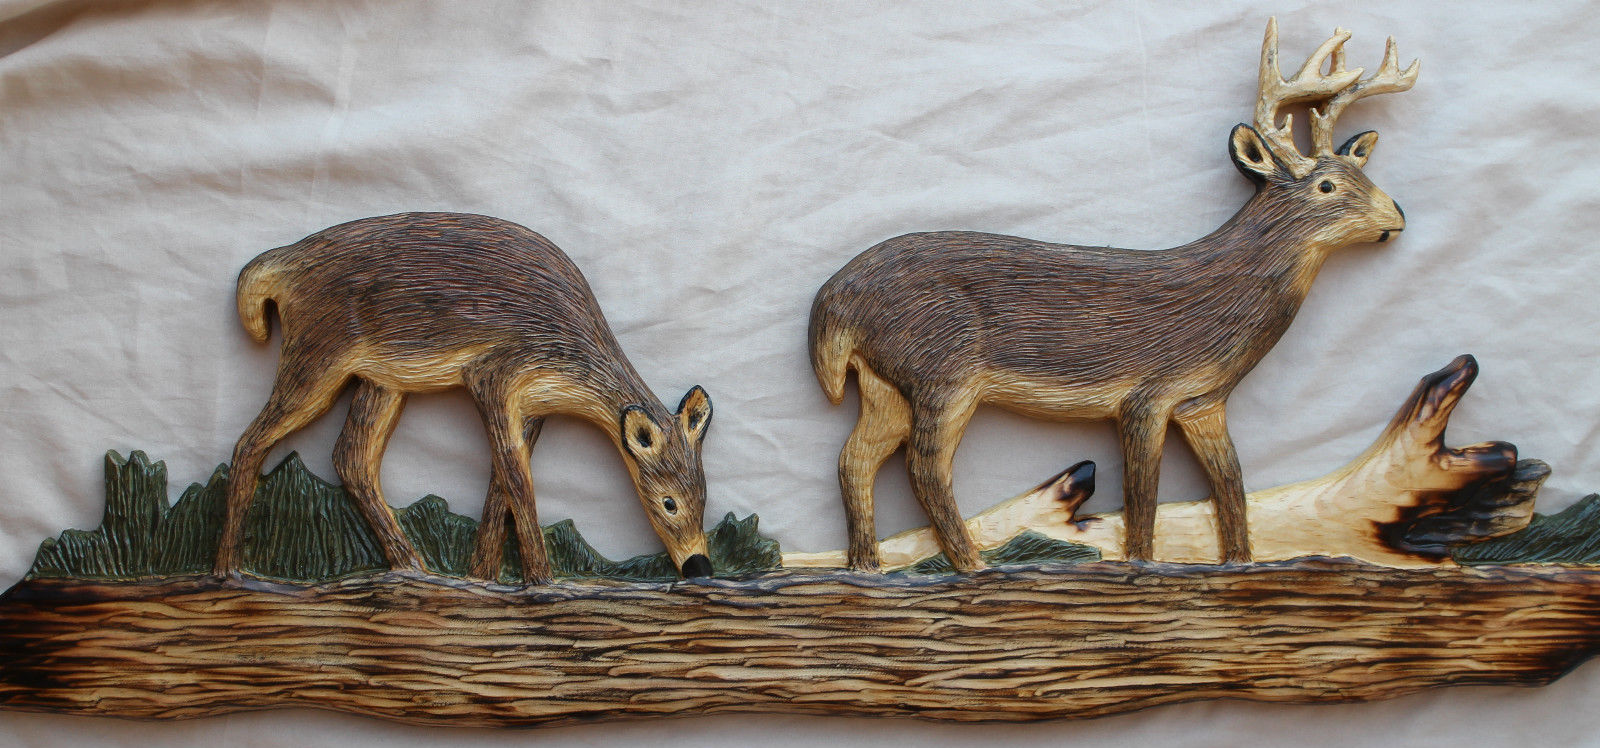 Cabin Wall Art log cabin decor hand carved wall art carvings of bear, raccoon